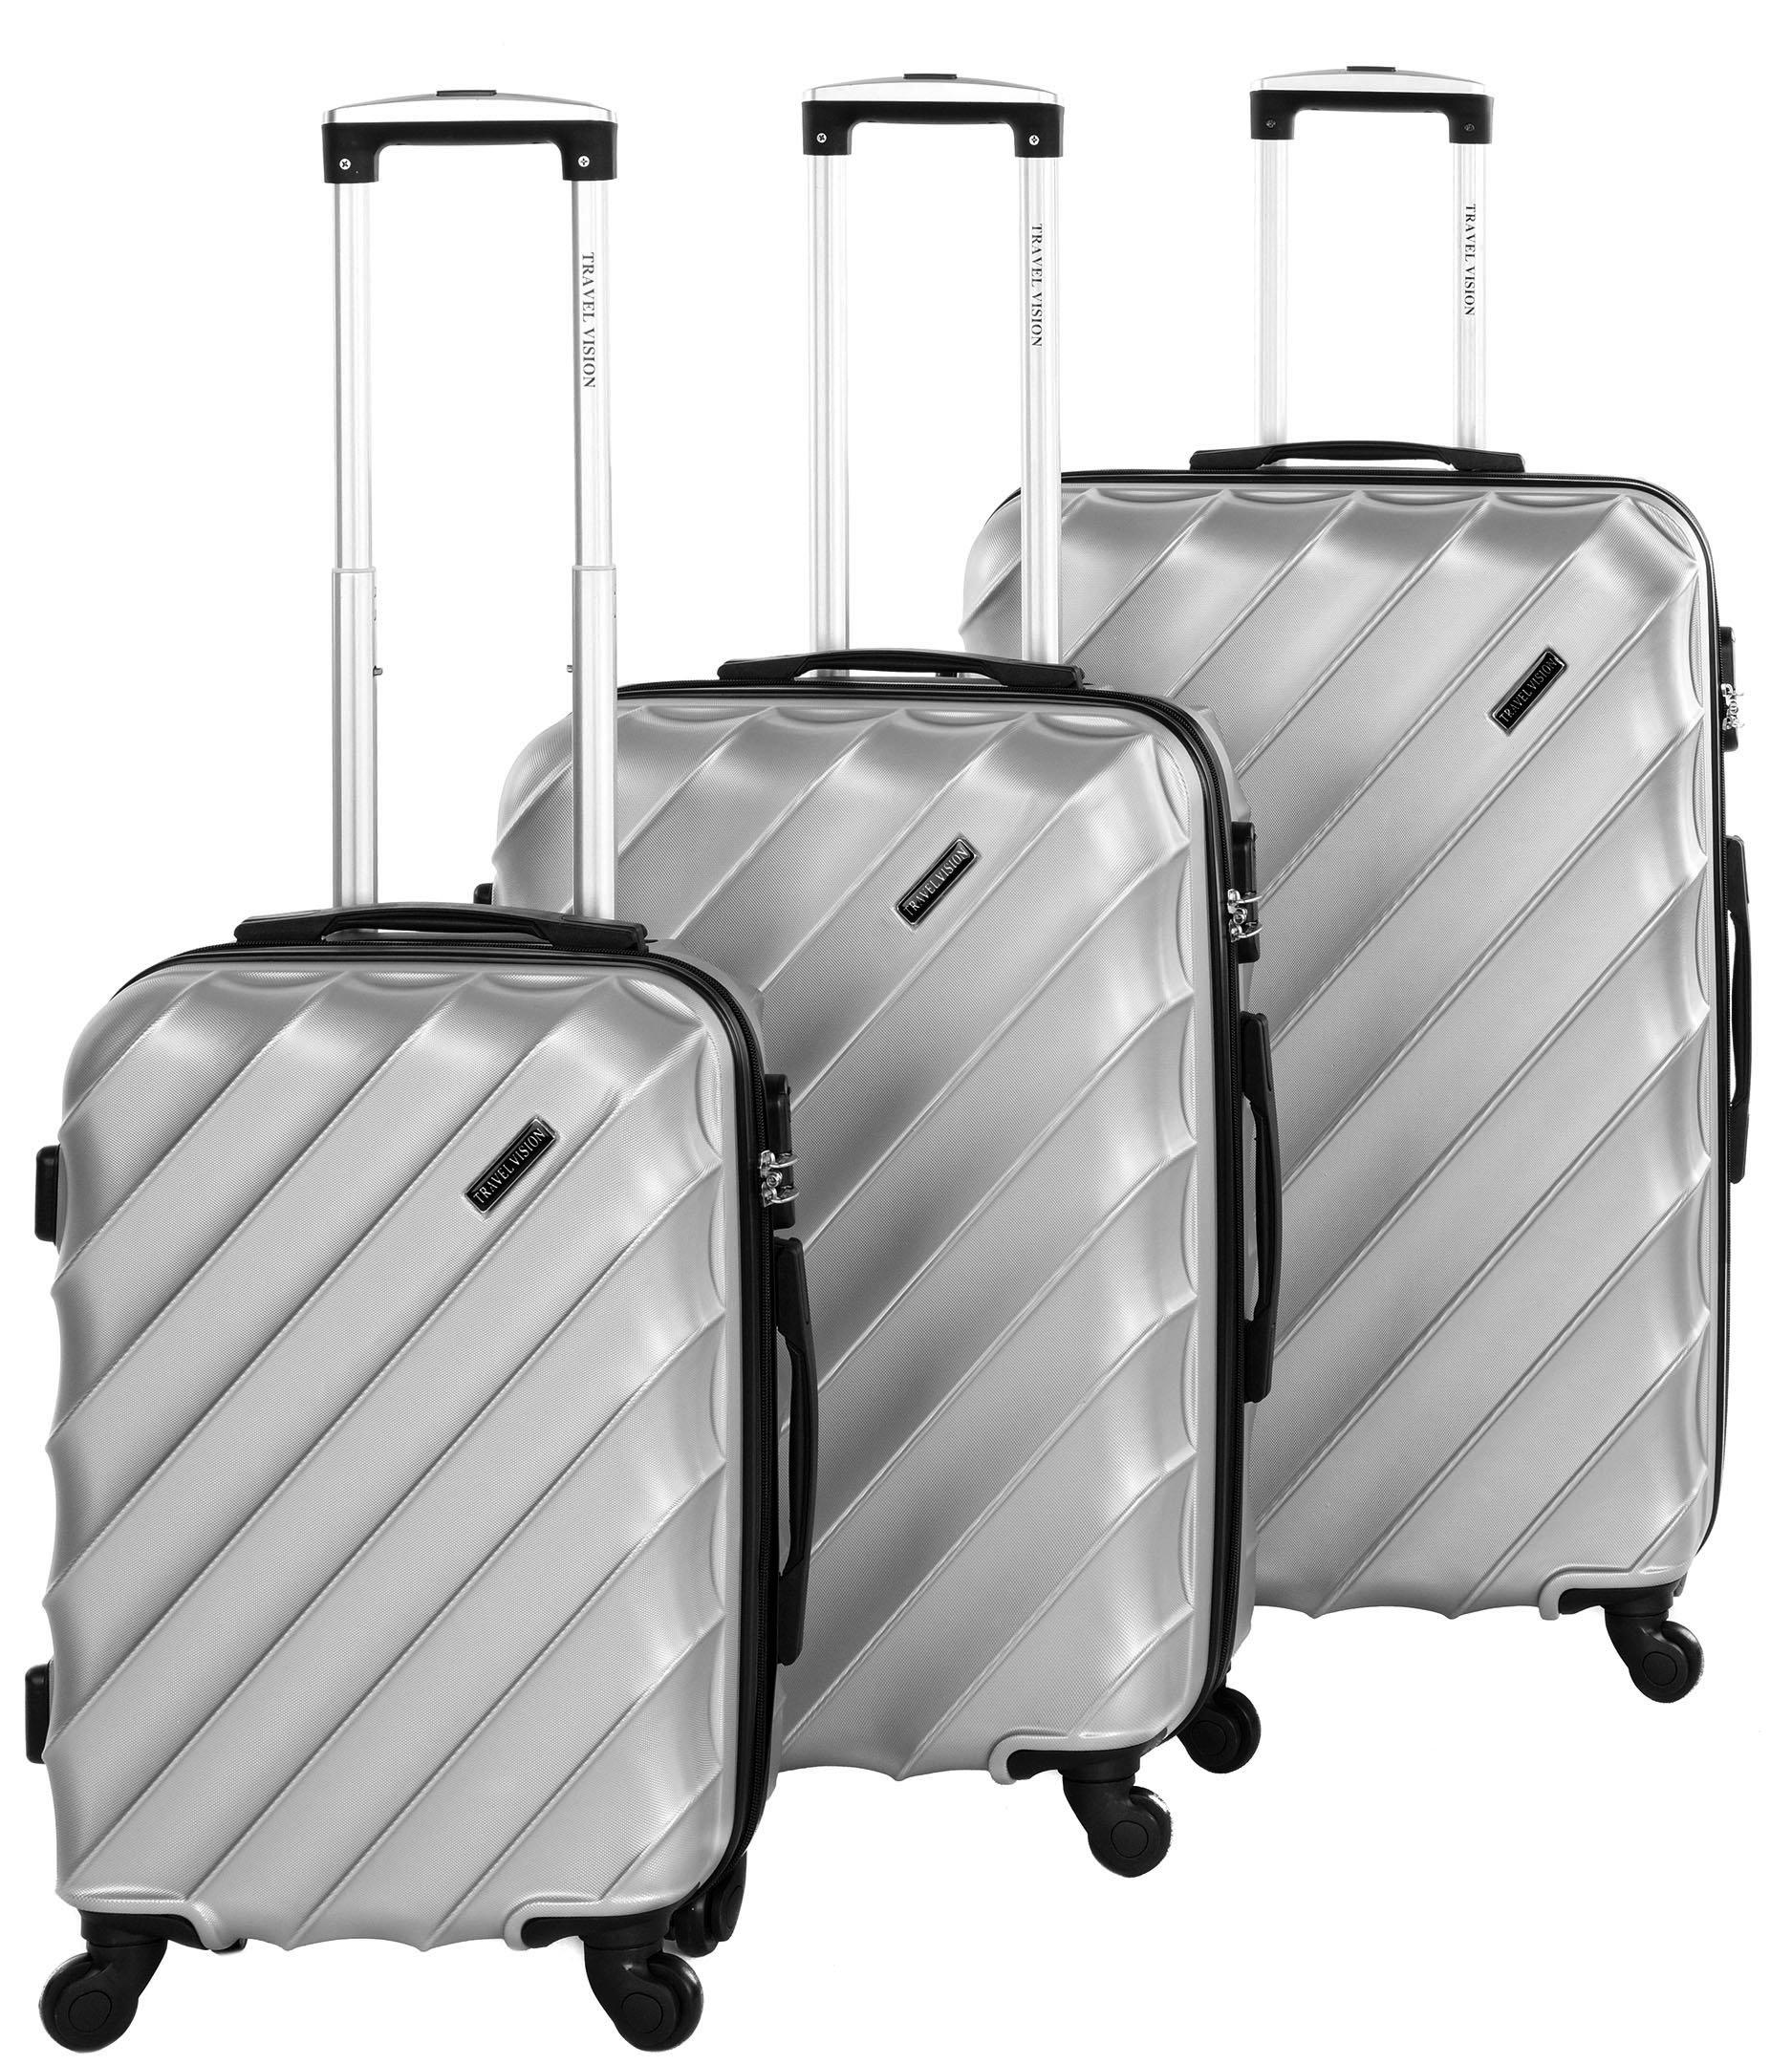 Travel vision wave set of 3 - 20/24/28, Silver